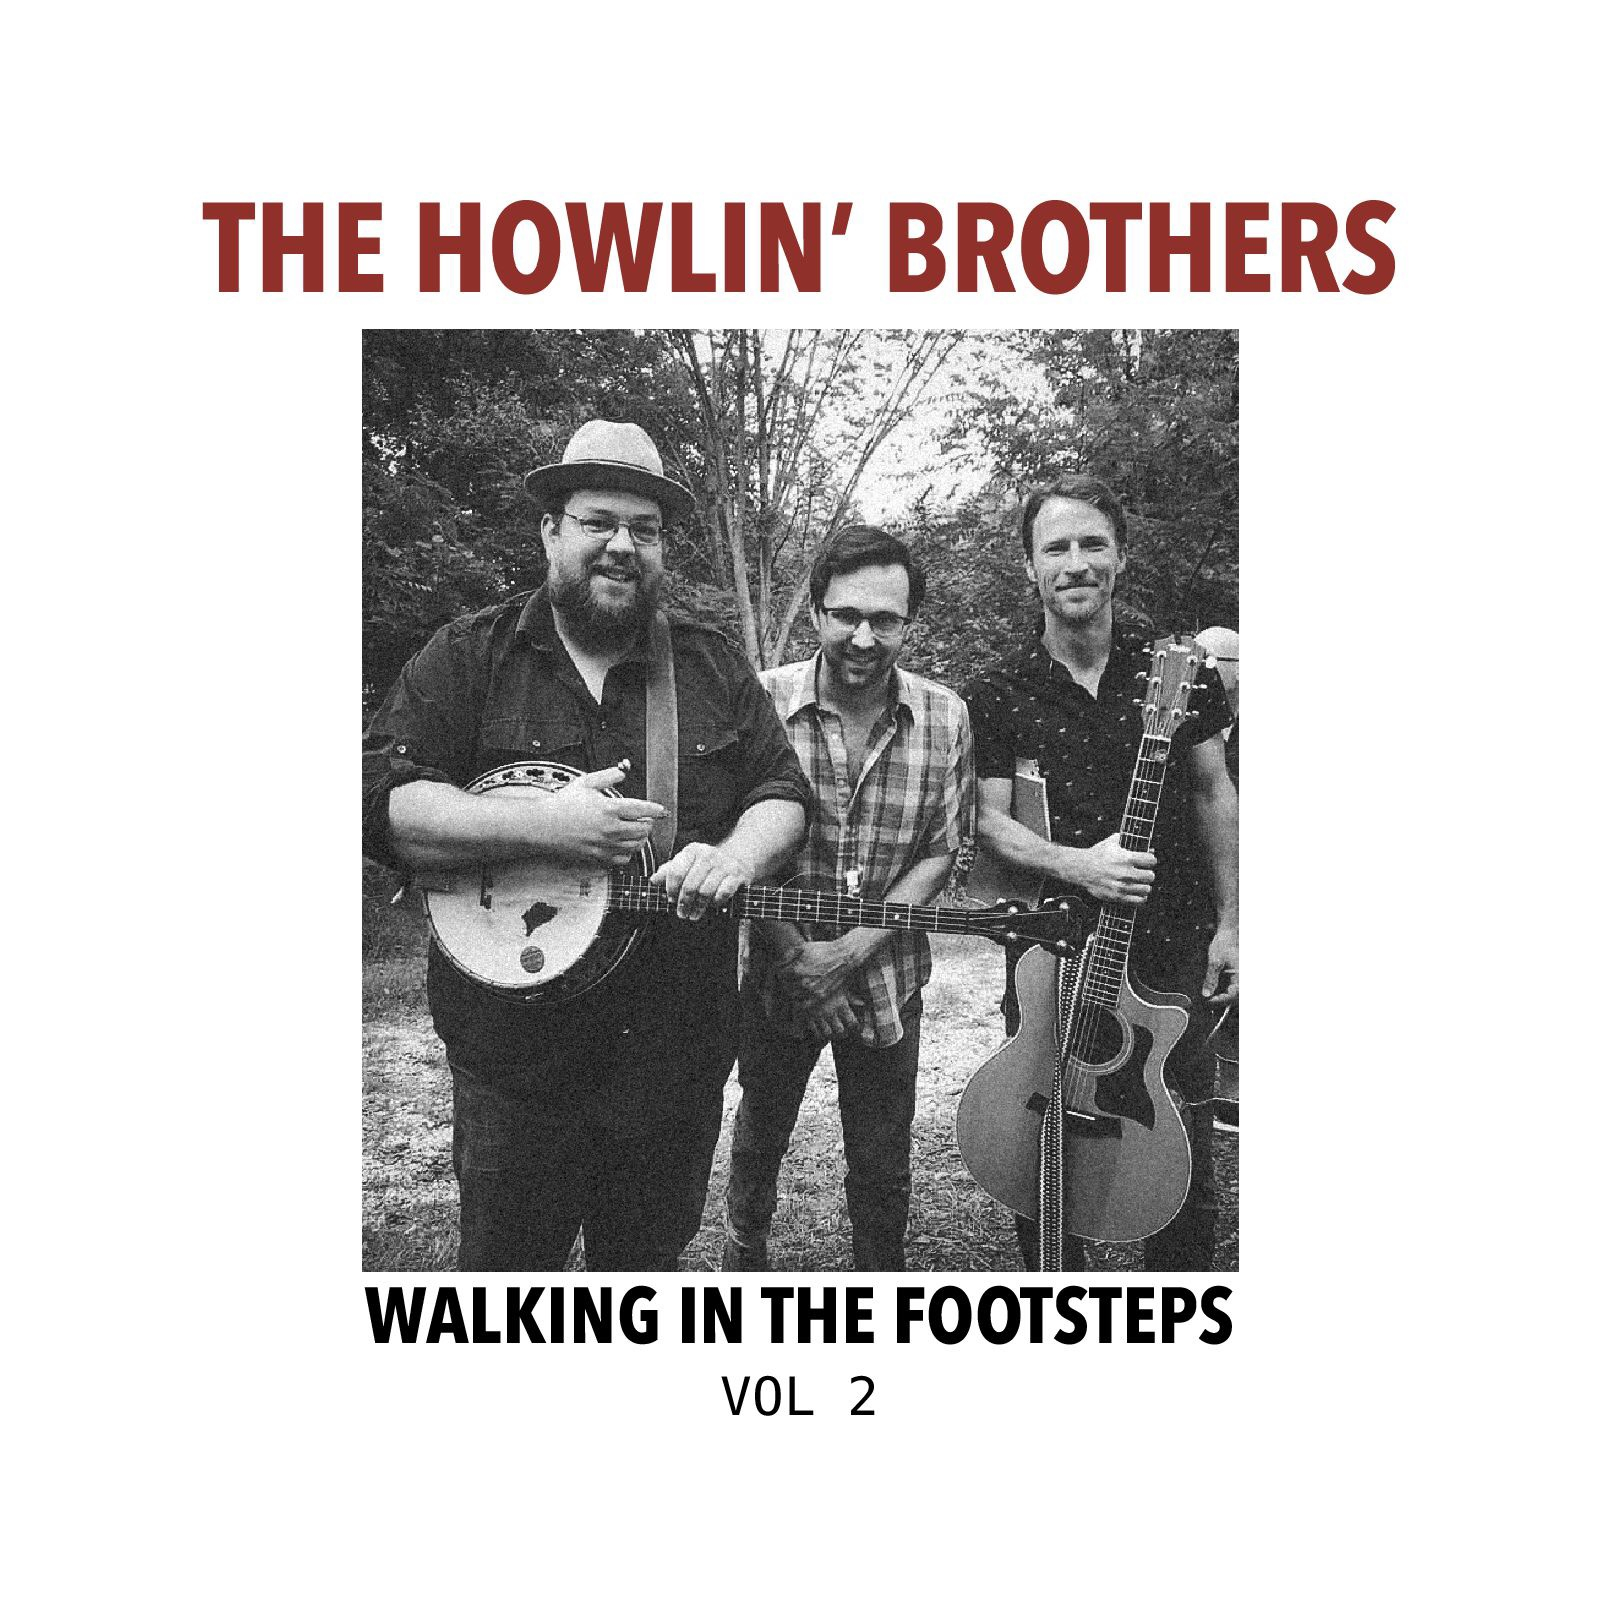 Walking in the Footsteps 2 (available now)